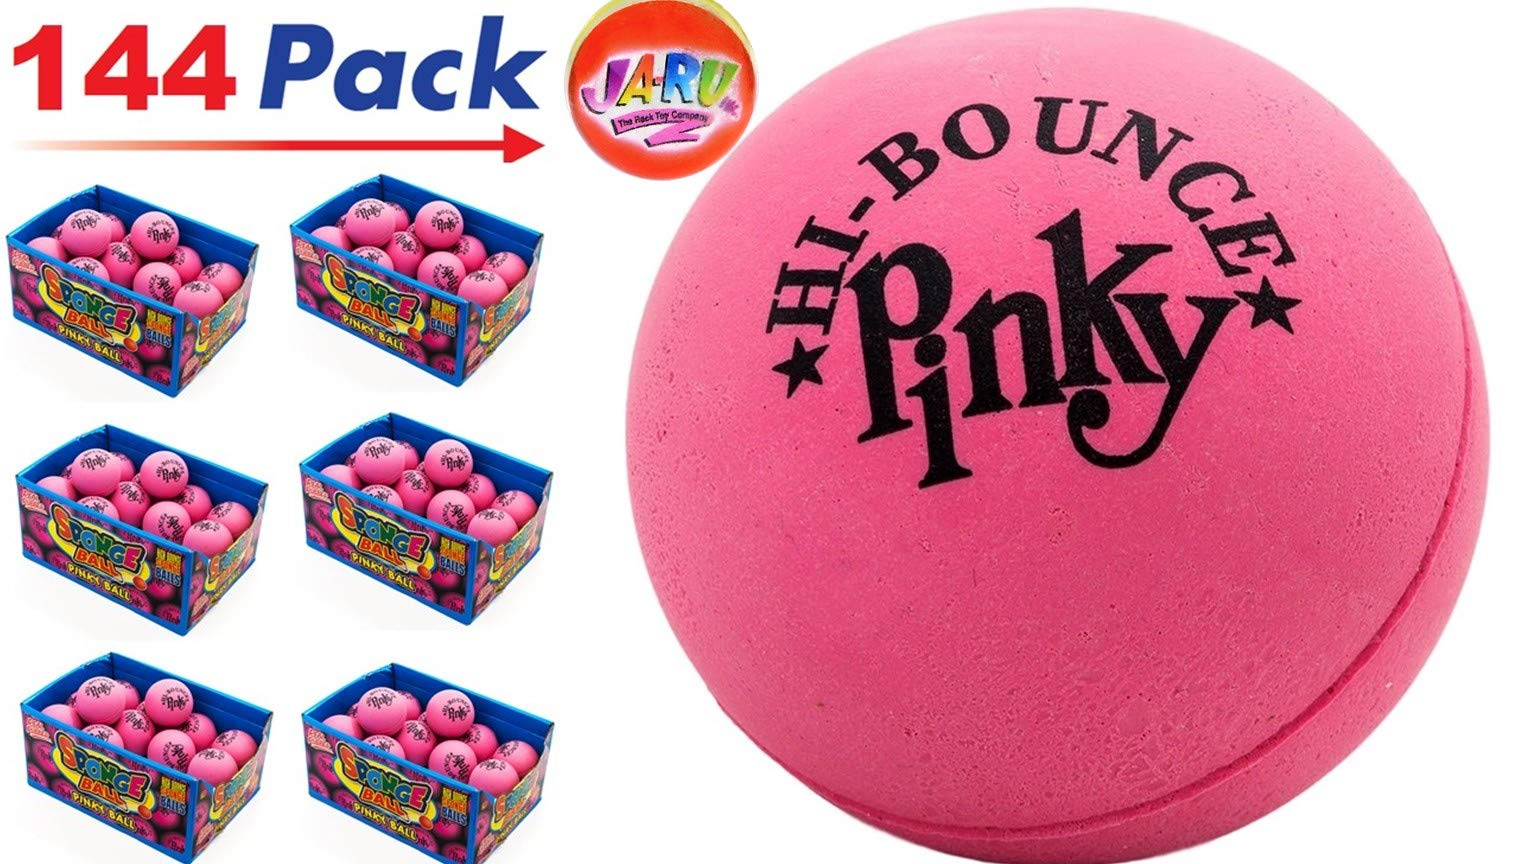 Pinky Ball (Pack of 144) 2.5'' Hi Bounce Large Pink Rubber Balls for Play or Massage Therapy. Plus 1 Small JA-RU Ball. #976-144p by JaRu